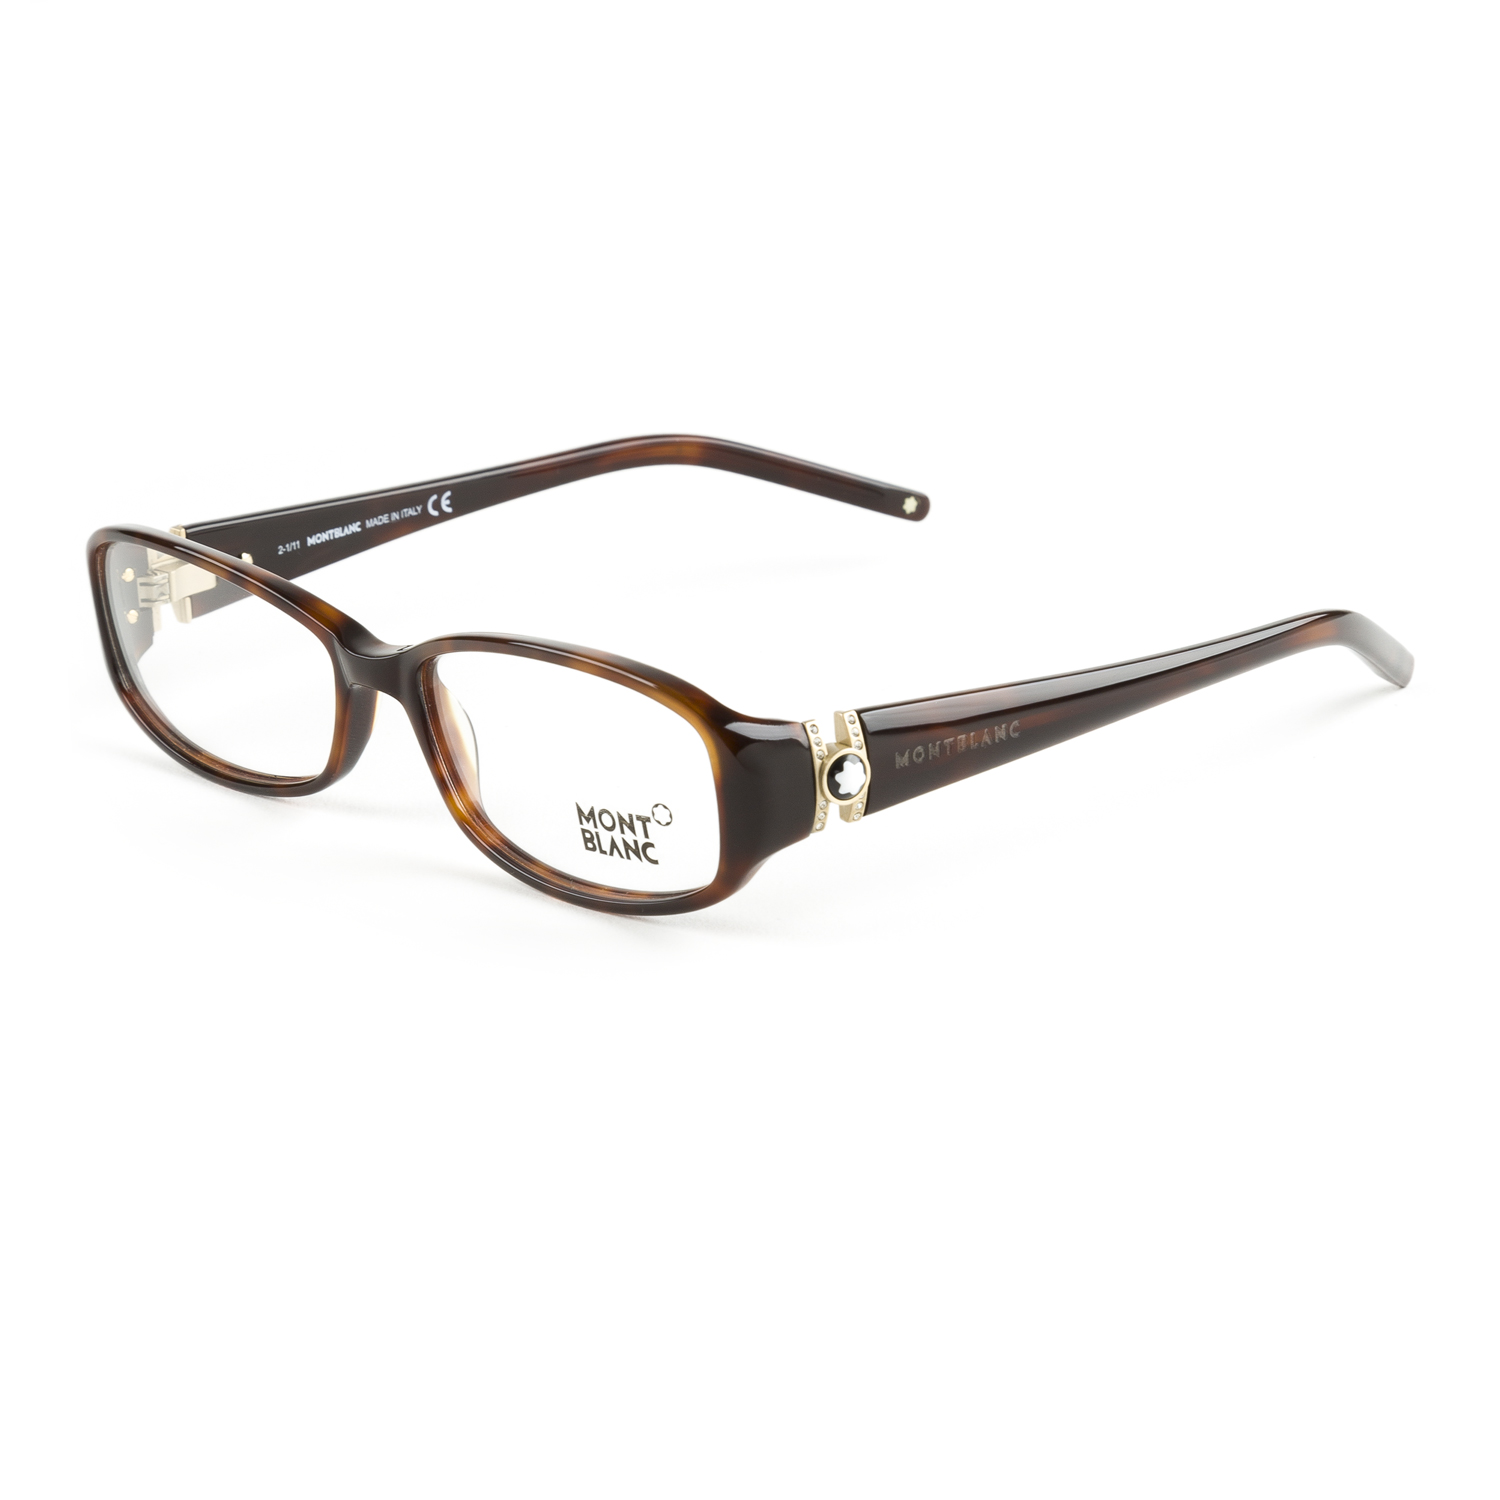 Montblanc Rectangular Eyeglass Frames 54mm MB343 NEW